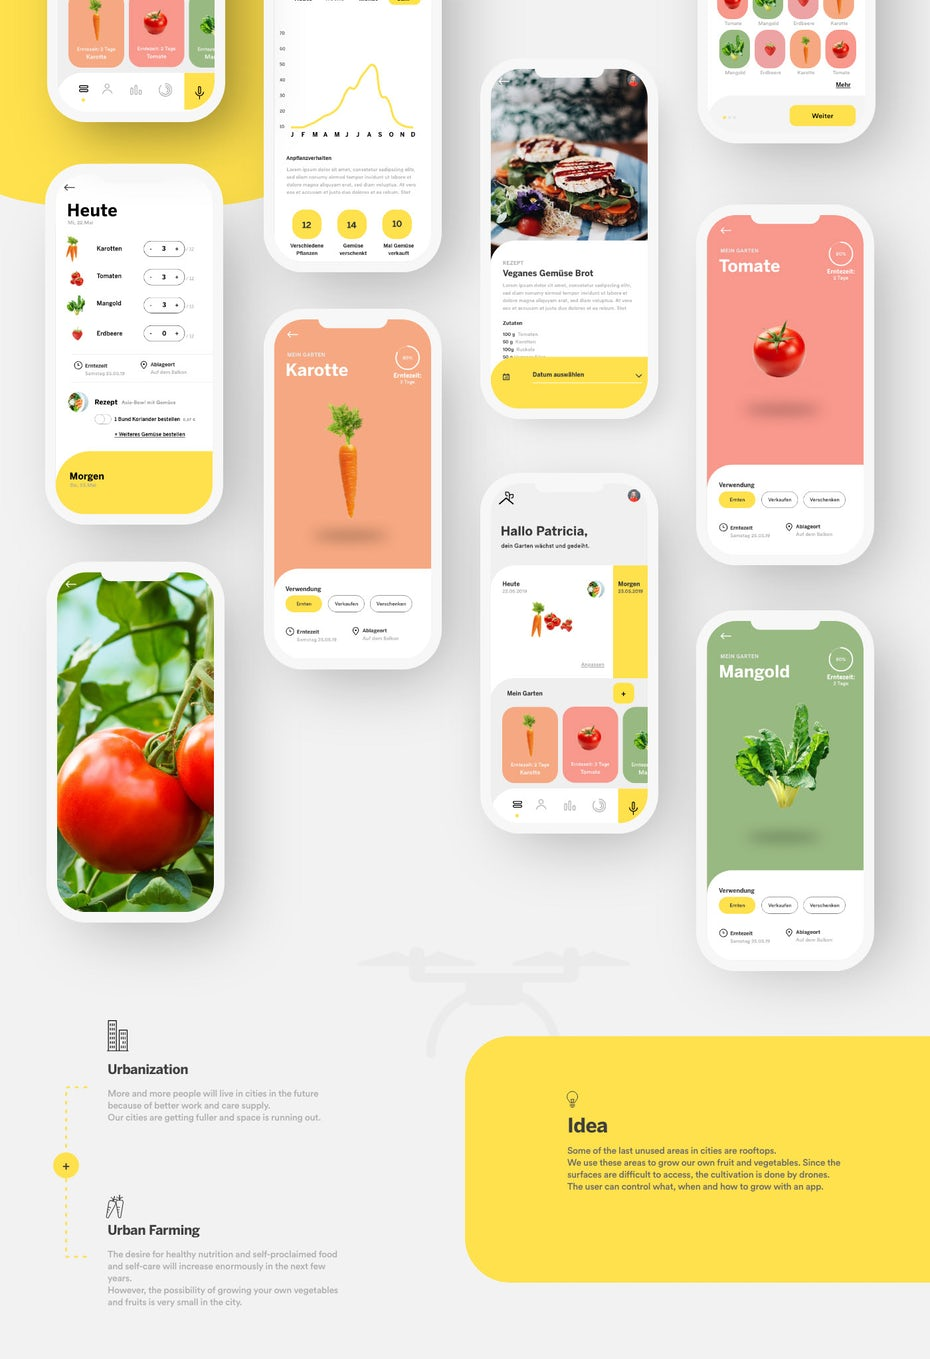 Branding trends 2020 example: Flying Veggies app design